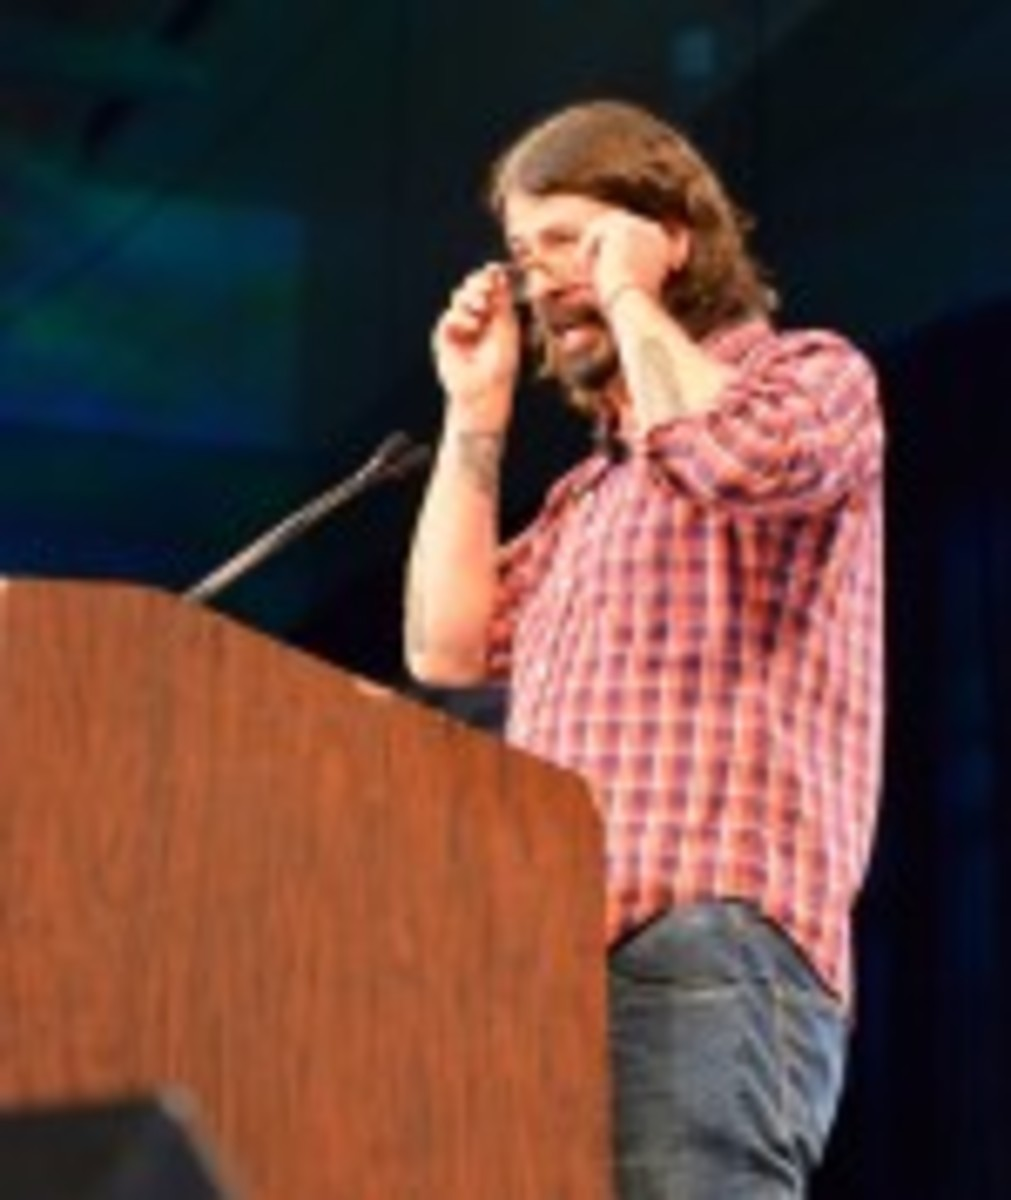 Dave Grohl prepares to deliver his SXSW keynote address. (Photo by Chris M. Junior)